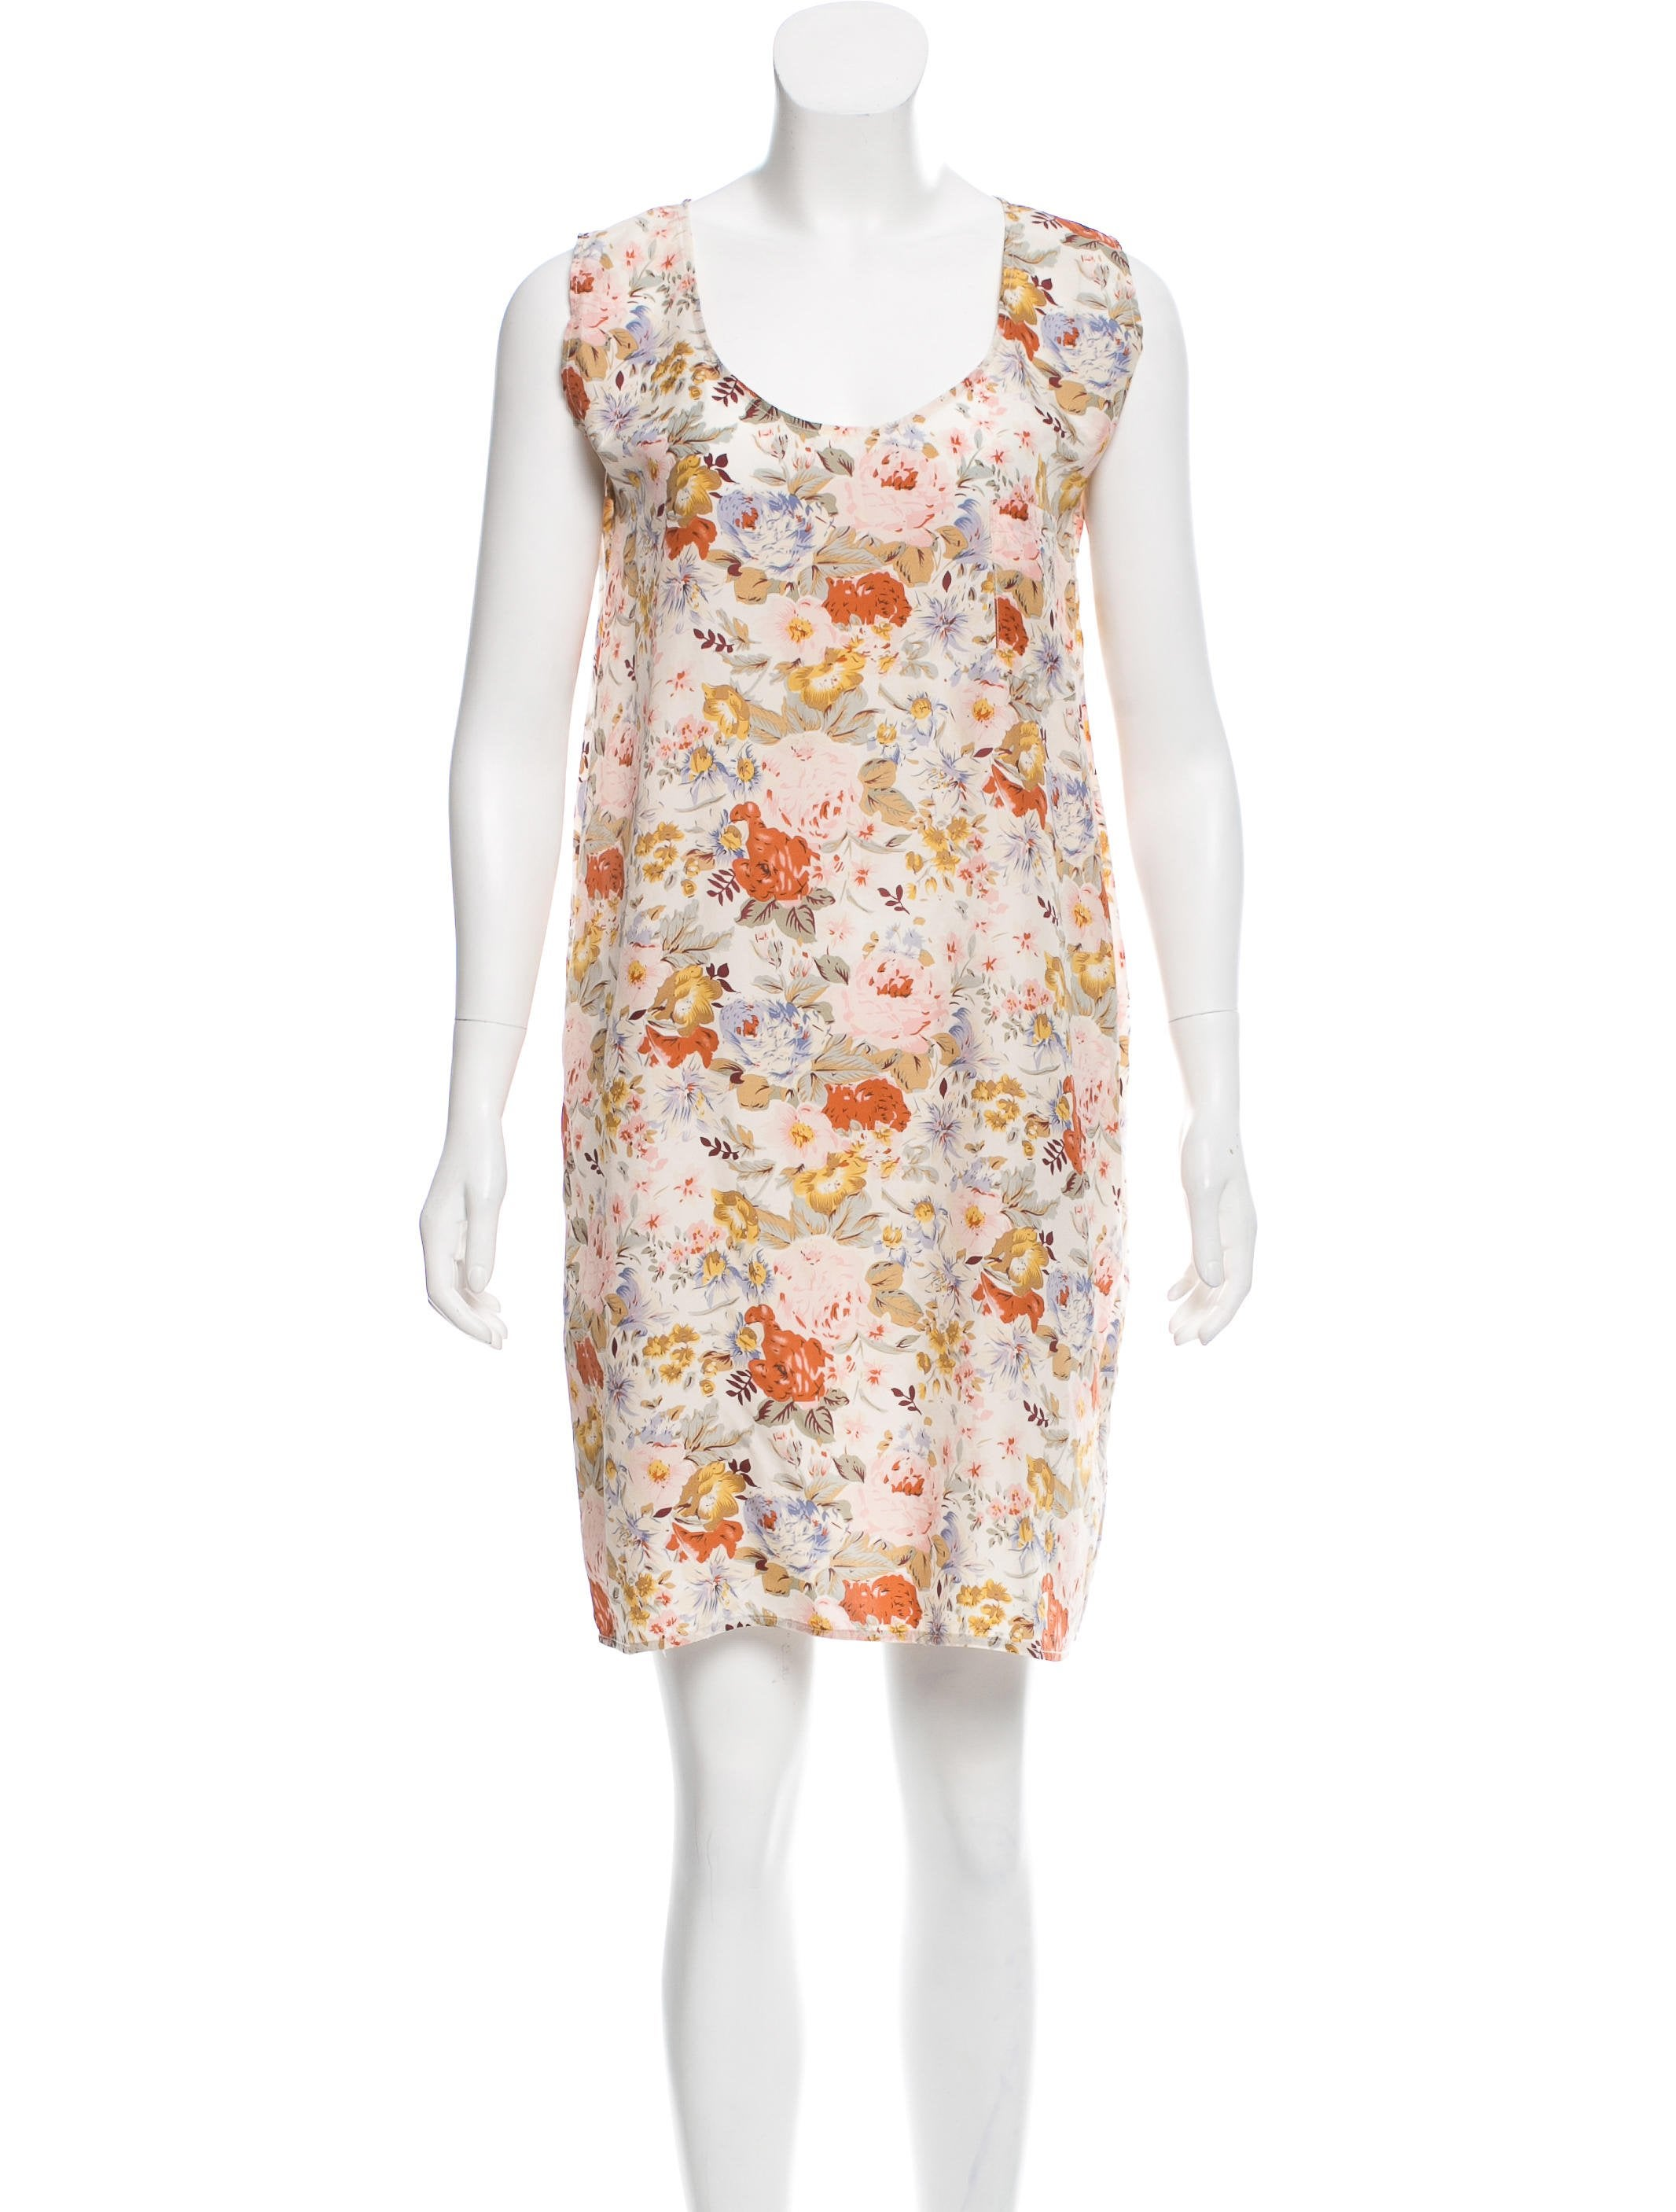 Zimmermann Silk Floral Dress Clothing Wzi26019 The Realreal